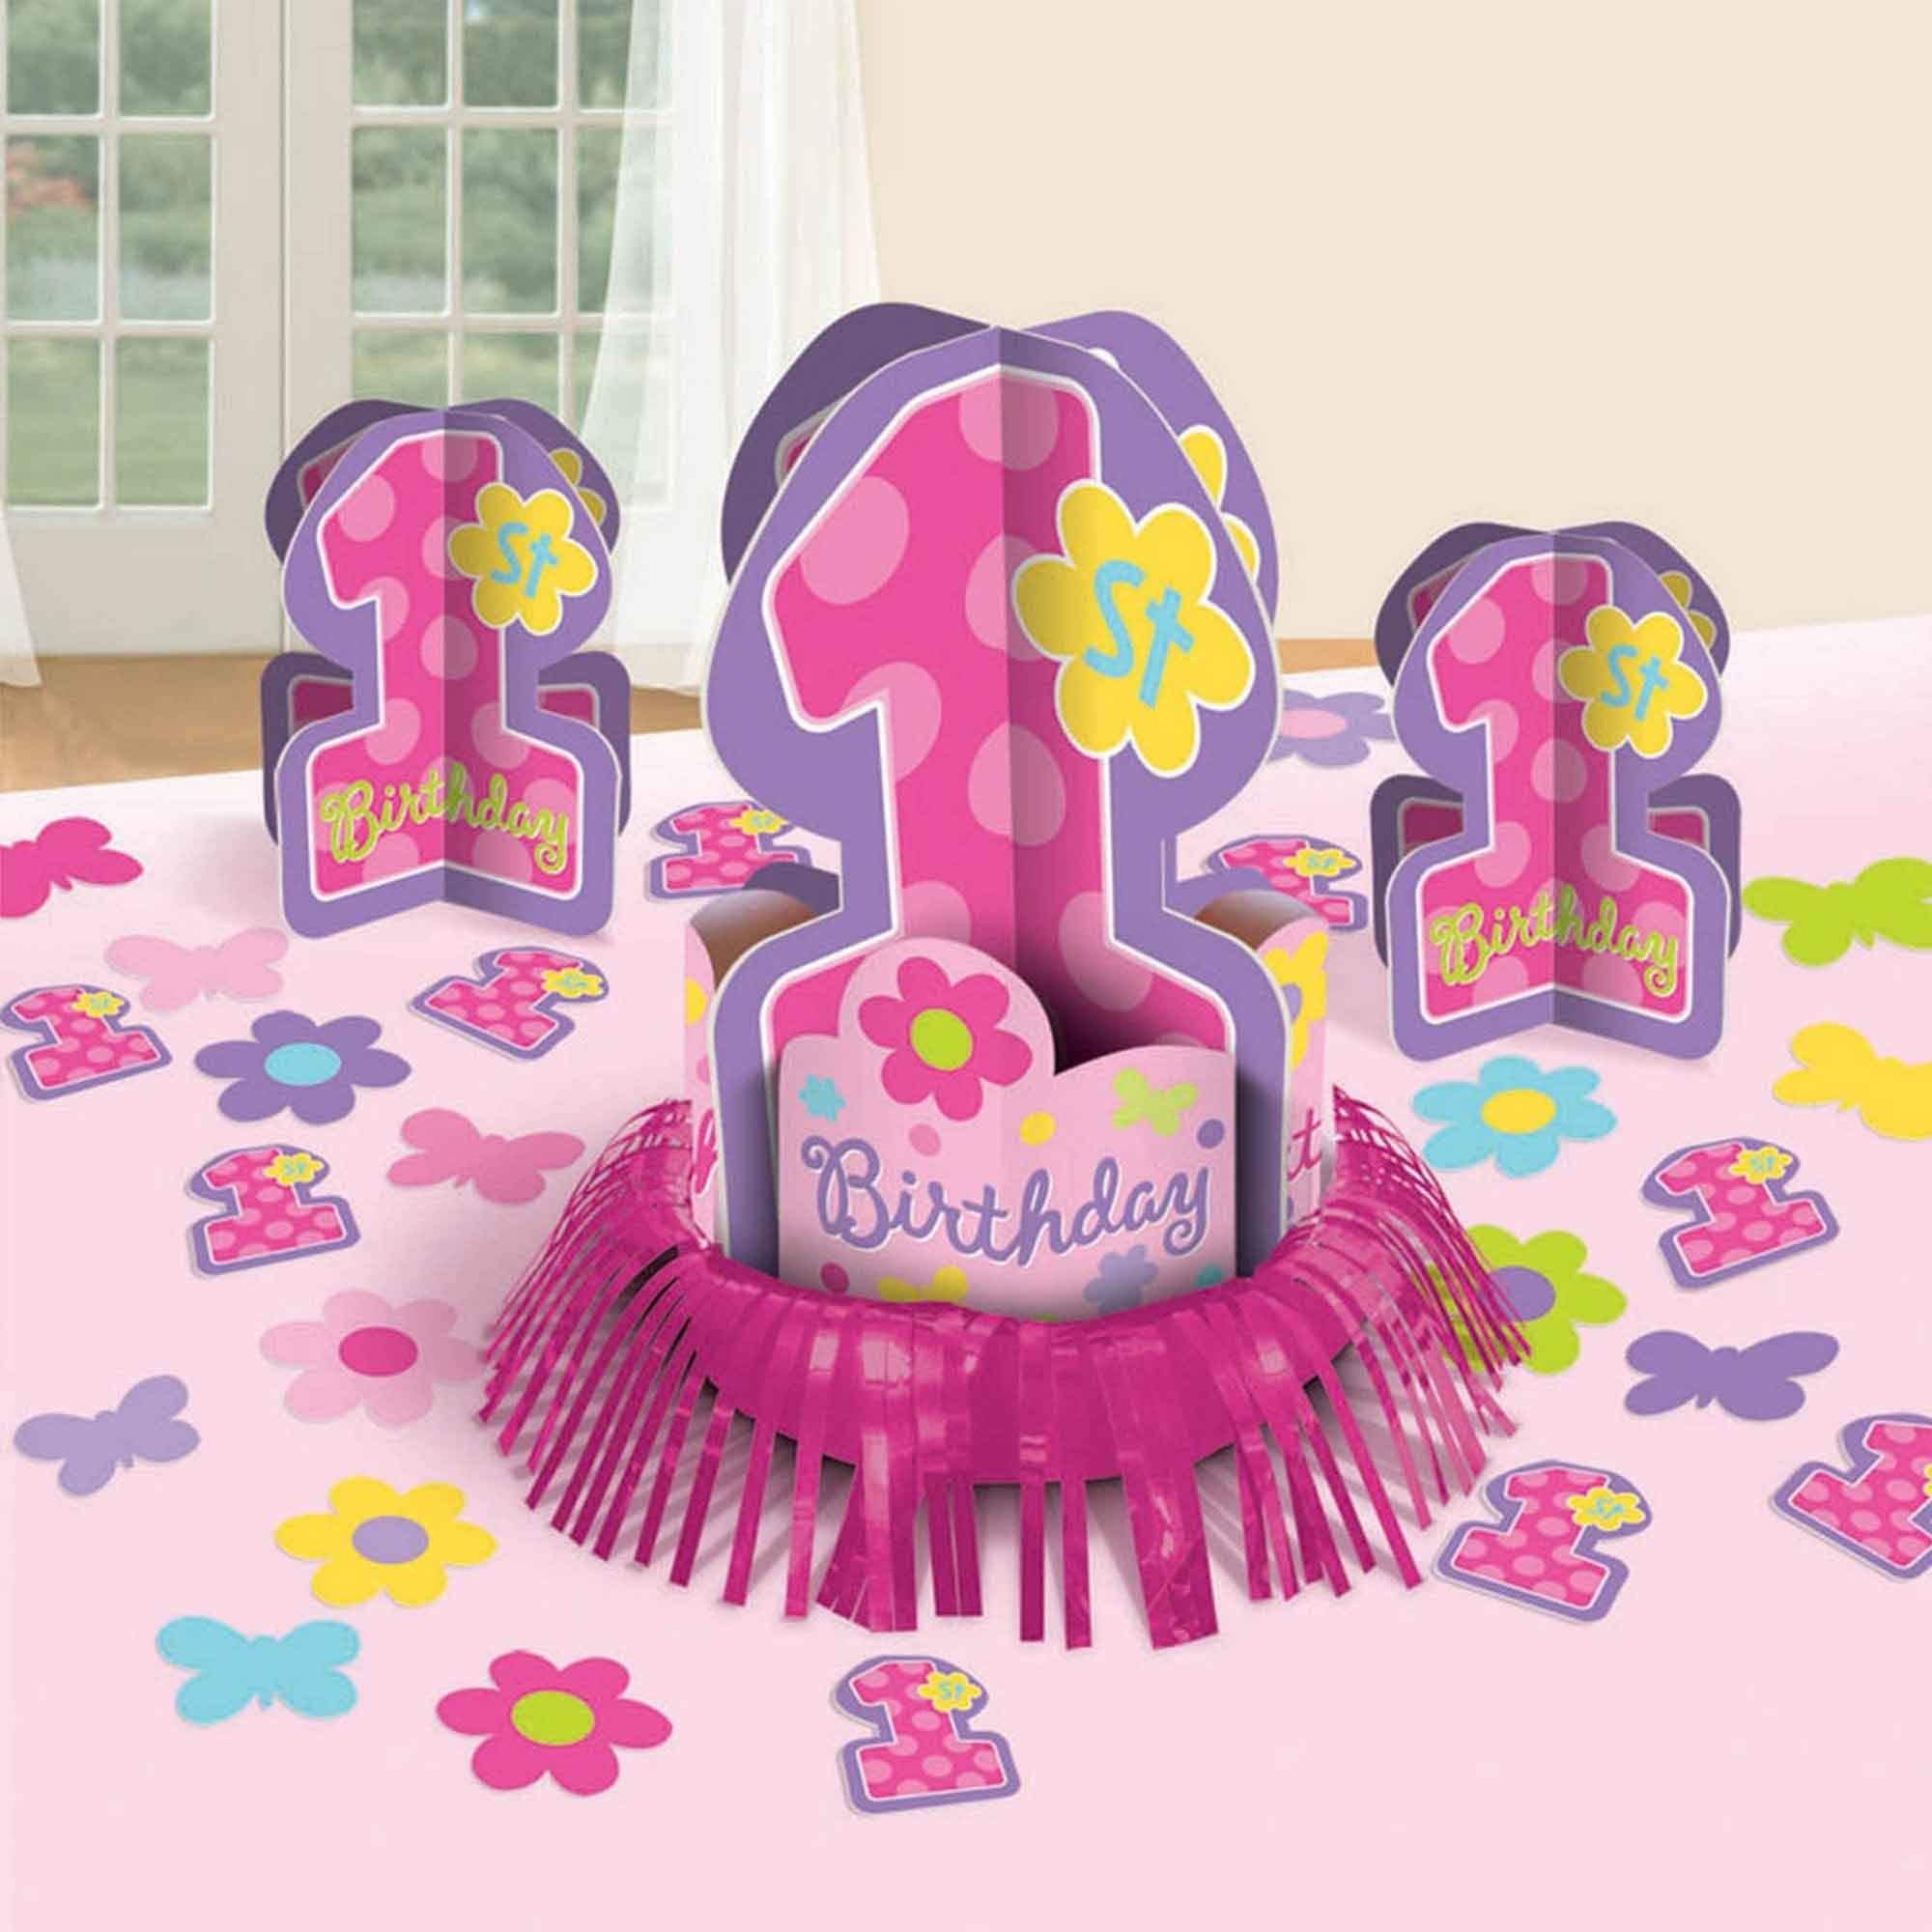 One-Derful Girl Table Decorating Kit